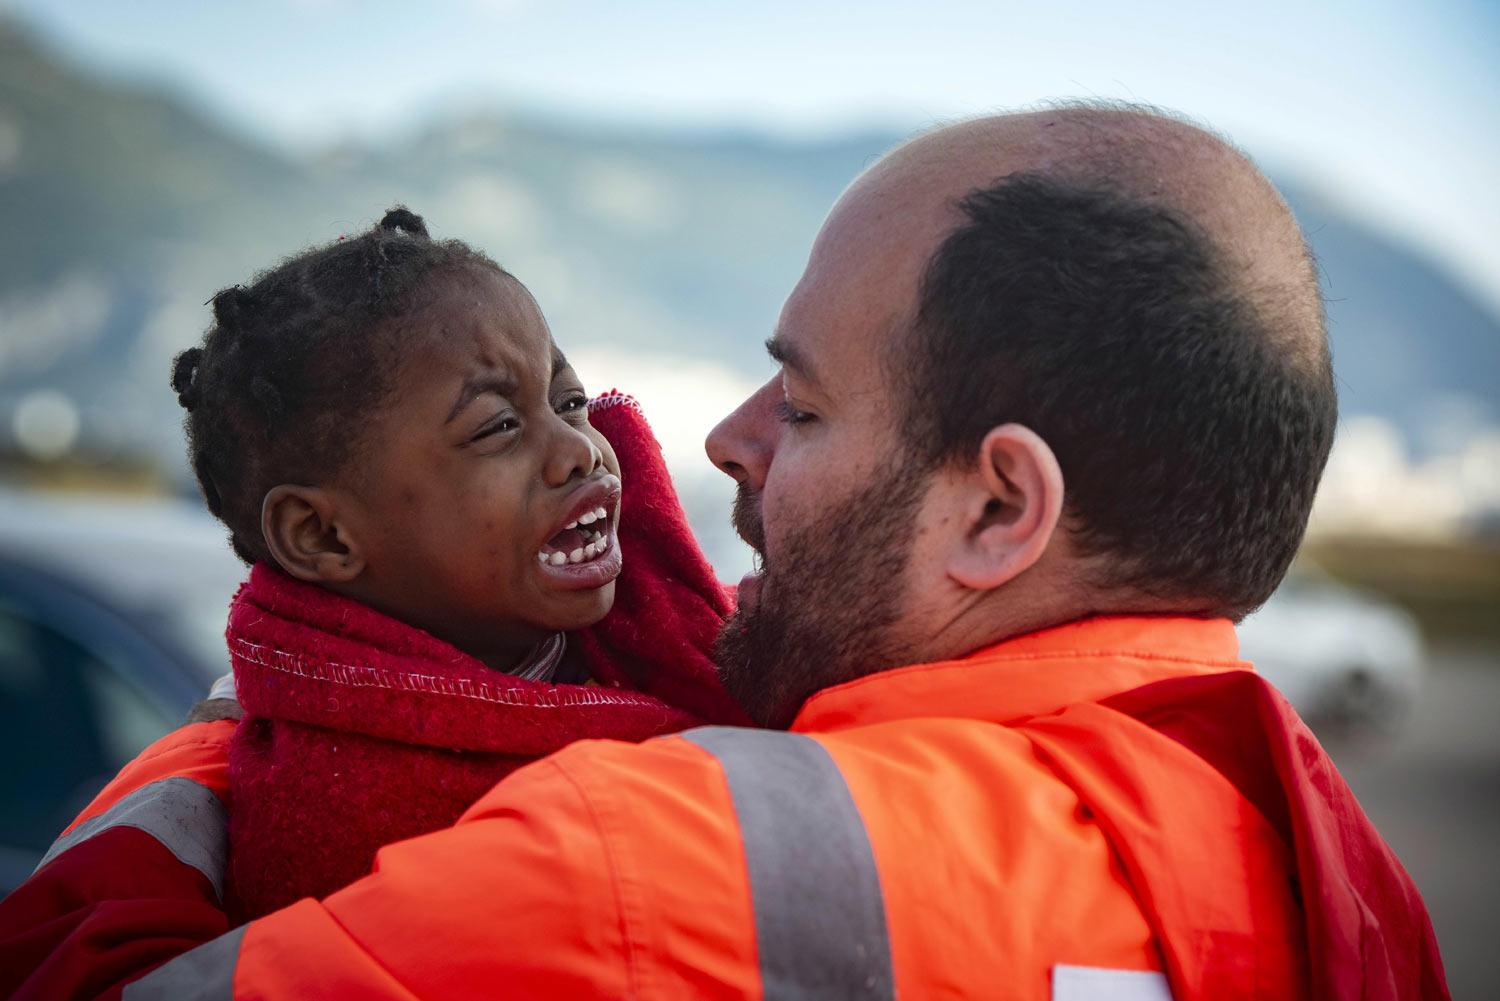 A child is carried by a member of Spain's Maritime Rescue Service as they arrive at the port of San Roque, southern Spain, after being rescued in the Strait of Gibraltar on Saturday, Oct. 27, 2018. The organization saved 520 people trying to cross from Africa to Spain's shores on Saturday. Also, one boat with 70 migrants arrived to the Canary Islands. Over 1,960 people have died trying to cross the Mediterranean to Europe this year, according to the United Nations. (AP Photo/Marcos Moreno)